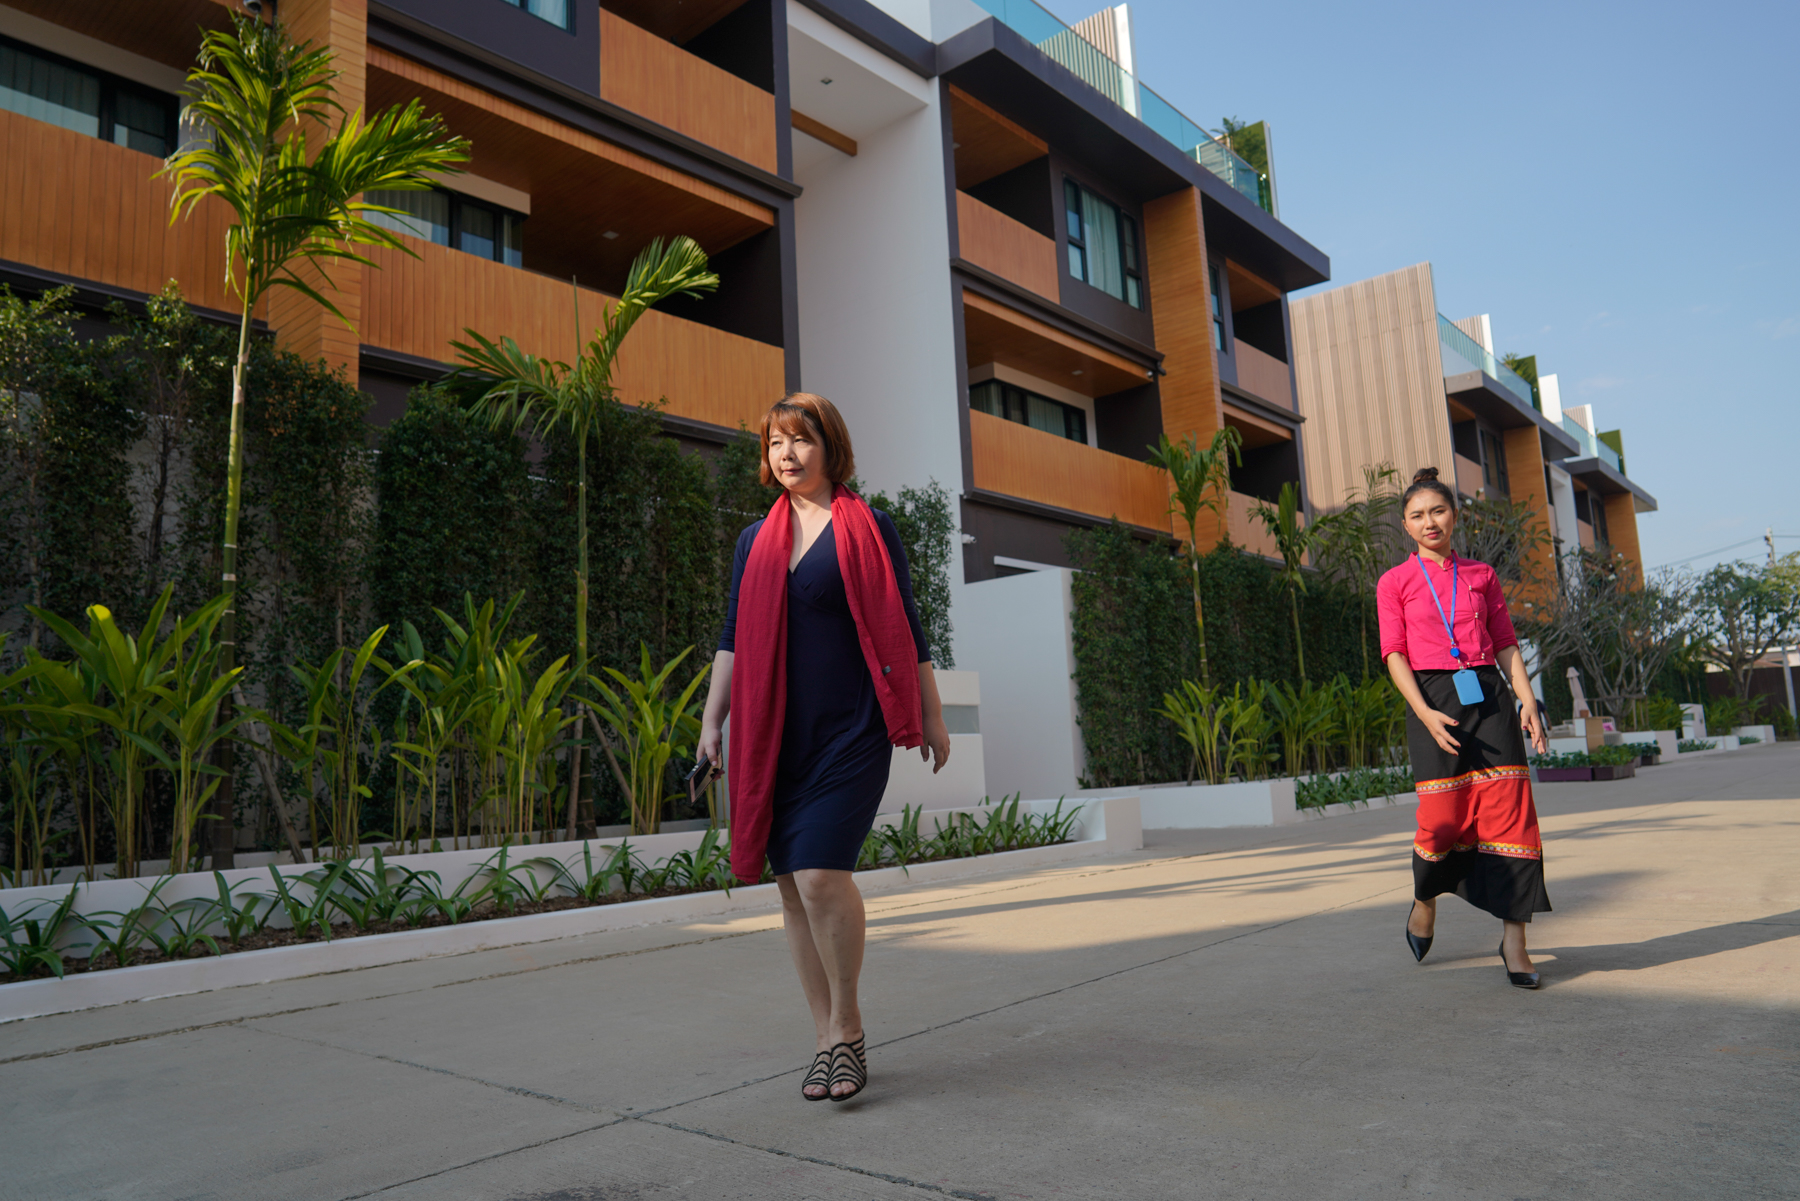 An Lan tours the condos she purchased in Chiang Mai, January 18, 2019. An's condos are rented out as hotel-style apartments by a management company. She receives more than 1 million baht (U.S.$30,000) a year in dividends, enough to cover her son's U.S.$9,700 yearly tuition at Nakornpayap International School (NIS) and the rent for a house they live in near the school.